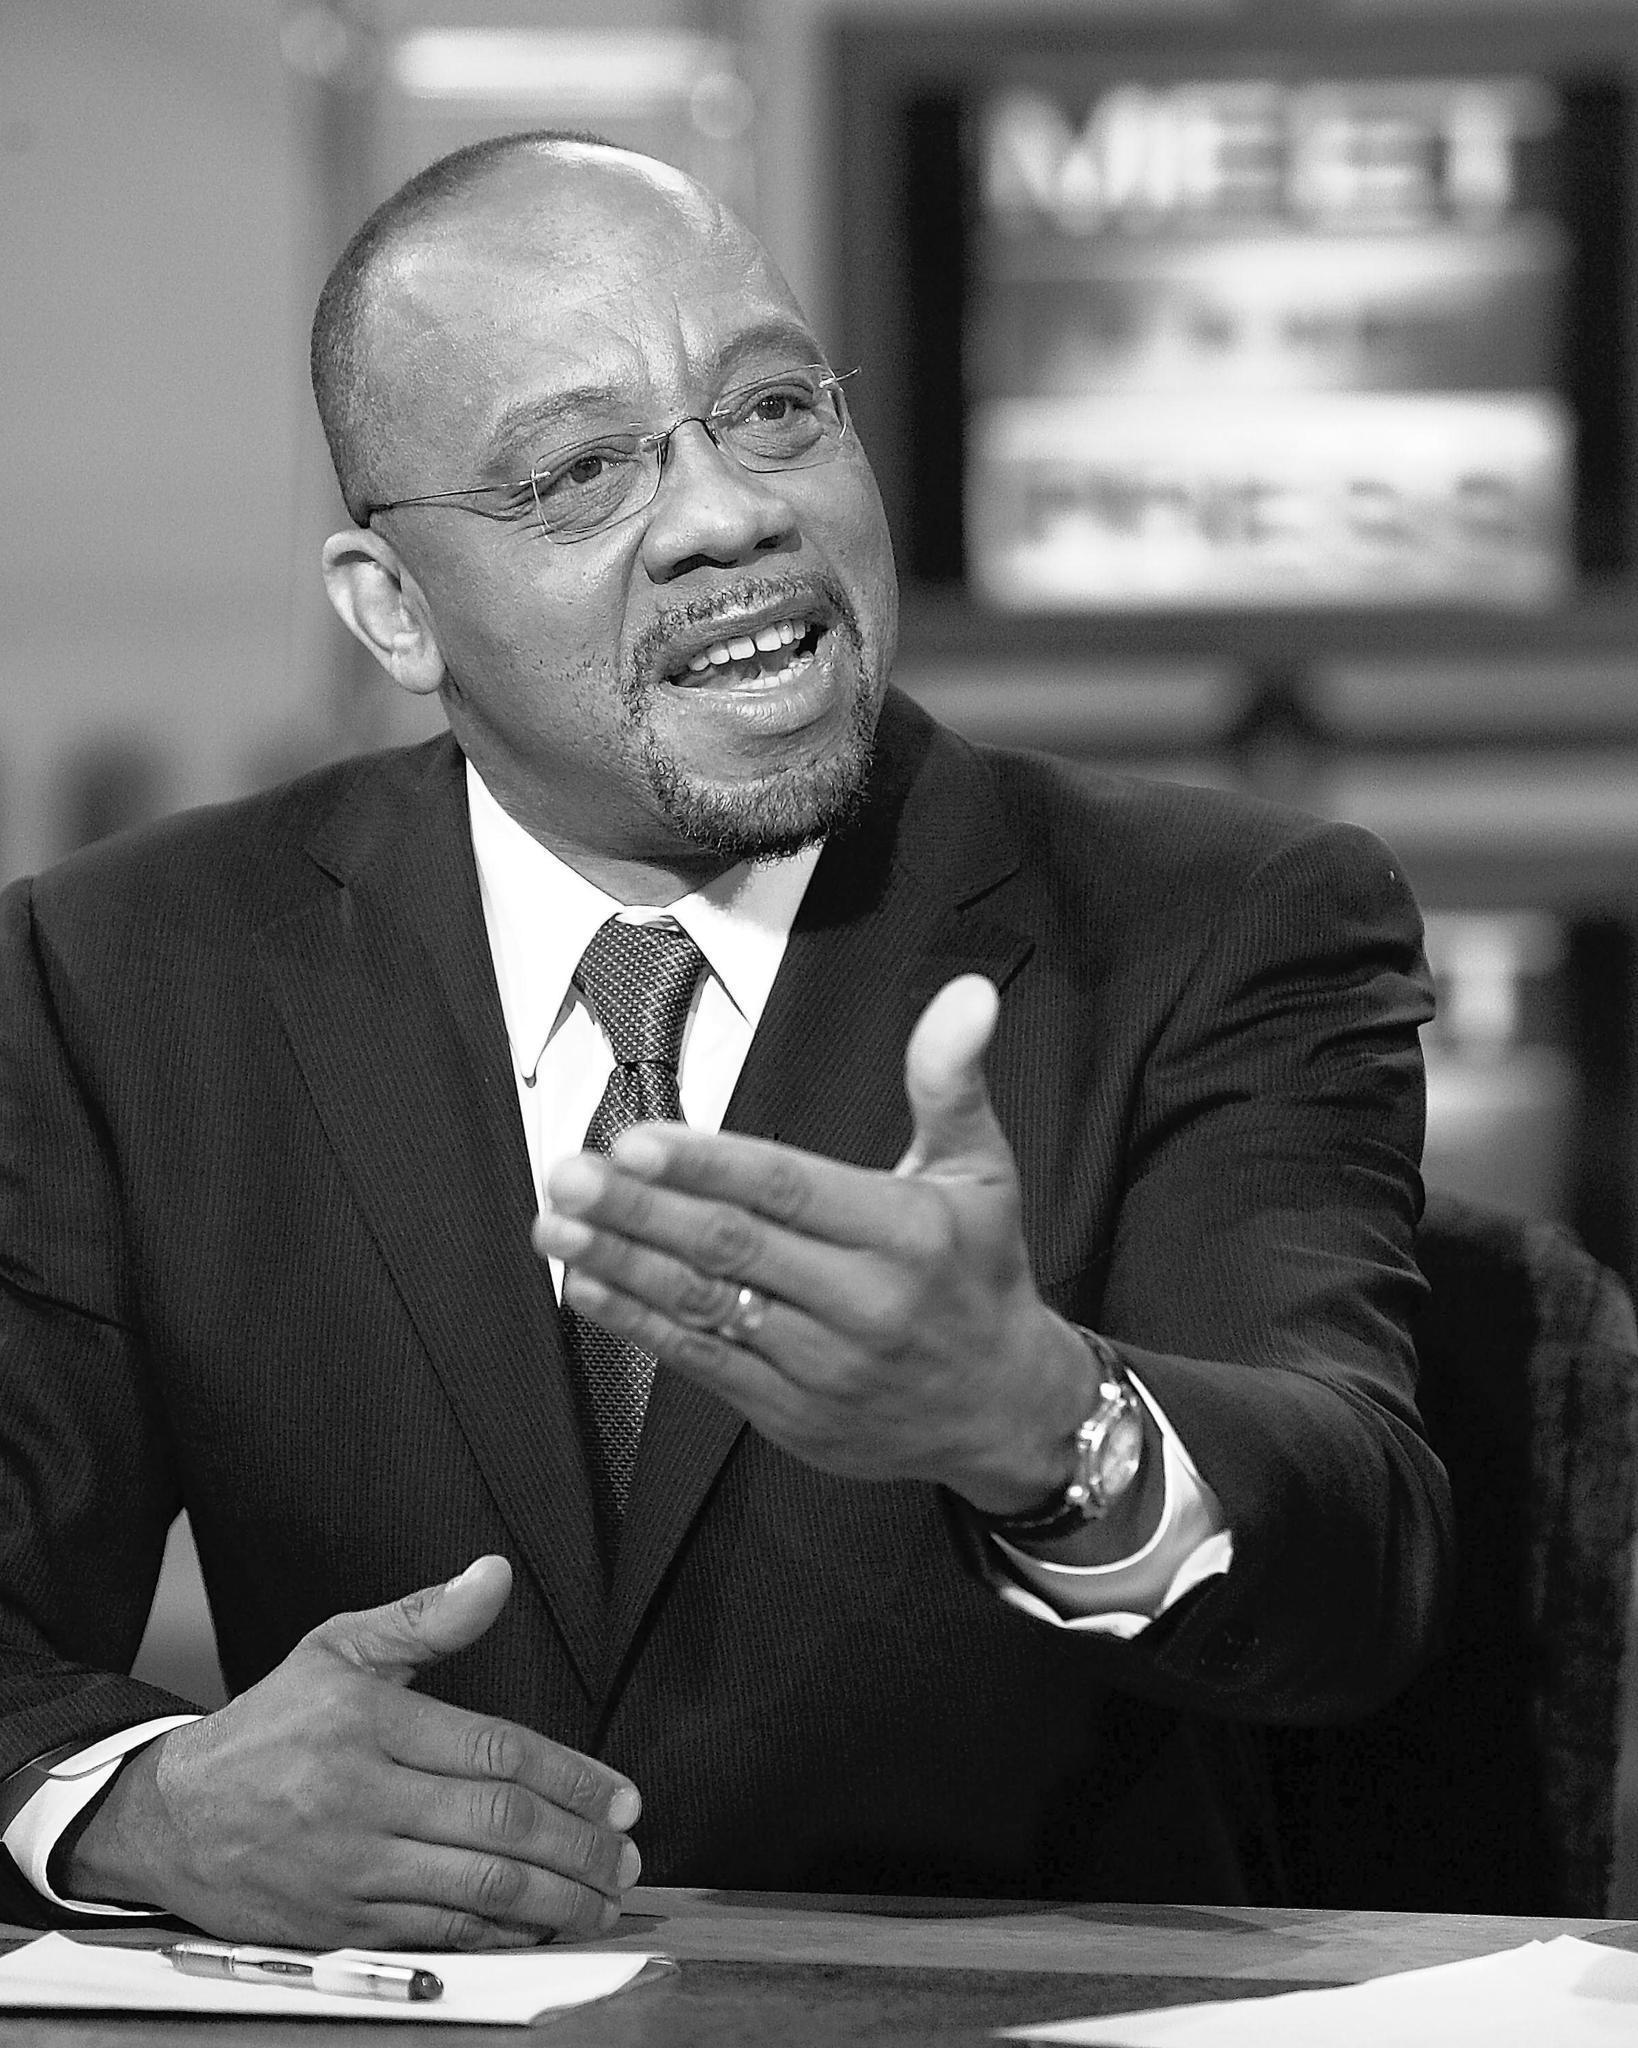 Next for Dems: Give voters something to believe in ... Eugene Robinson